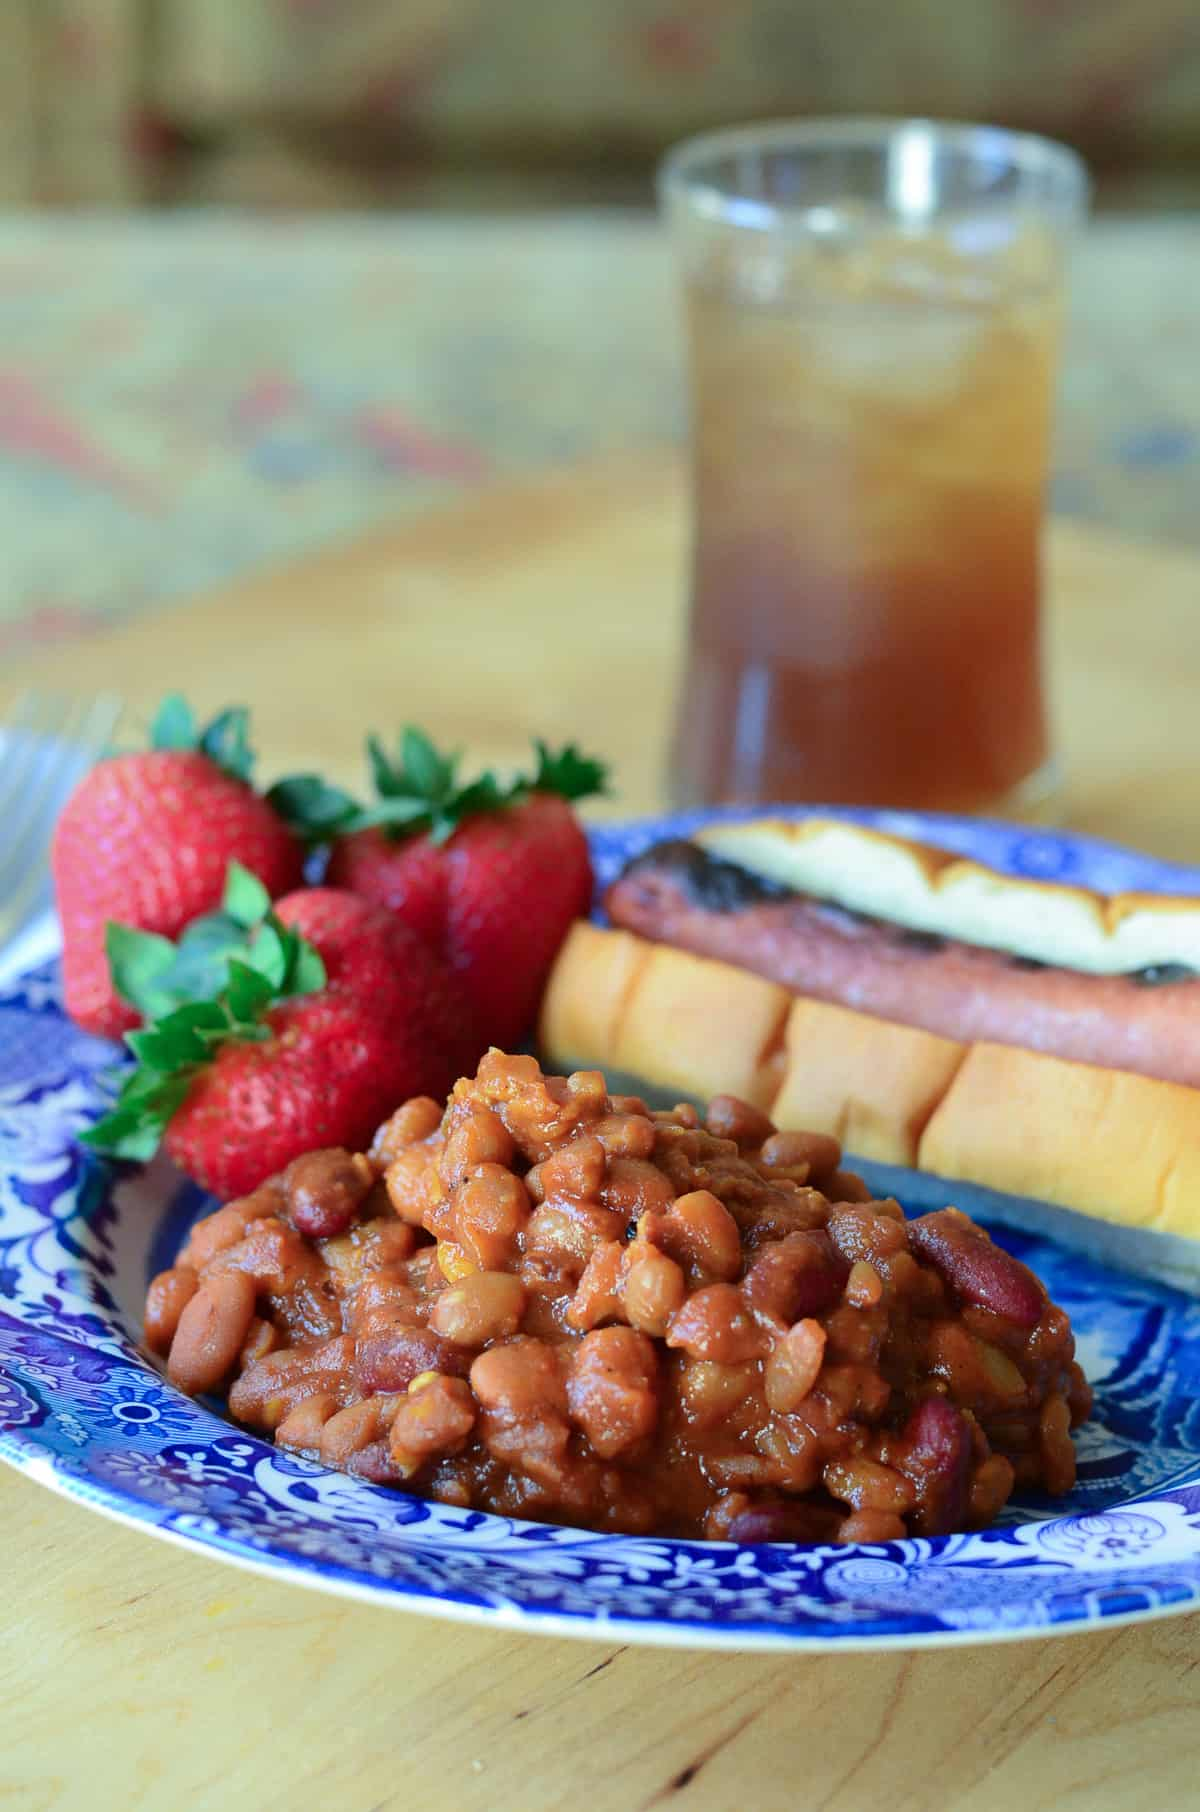 A serving of Spicy Baked Beans on a blue plate with a hot dog and strawberries.